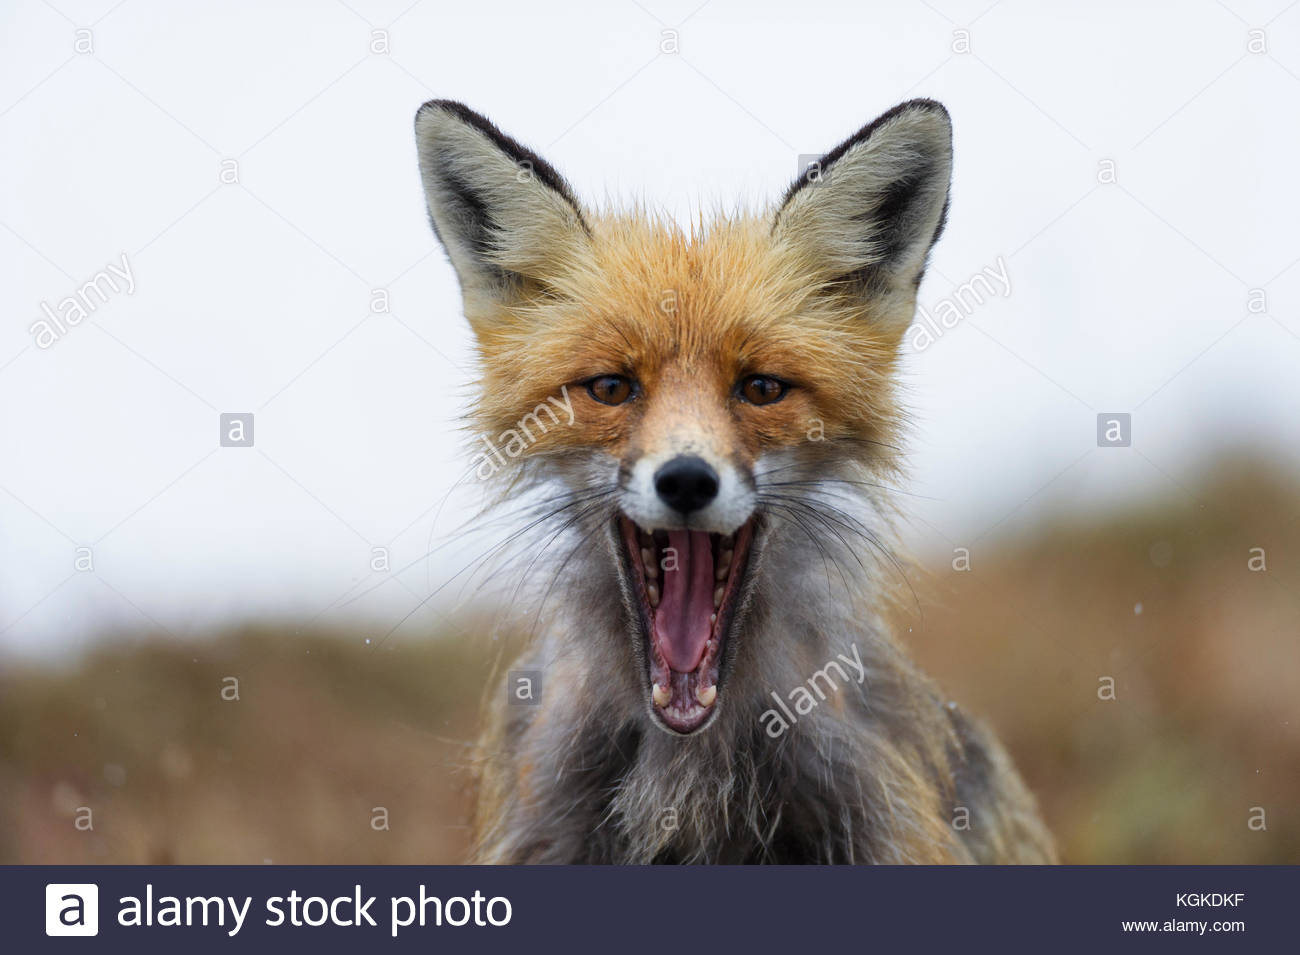 Portrait of a Red fox, Vulpes vulpes, with mouth open. - Stock Image